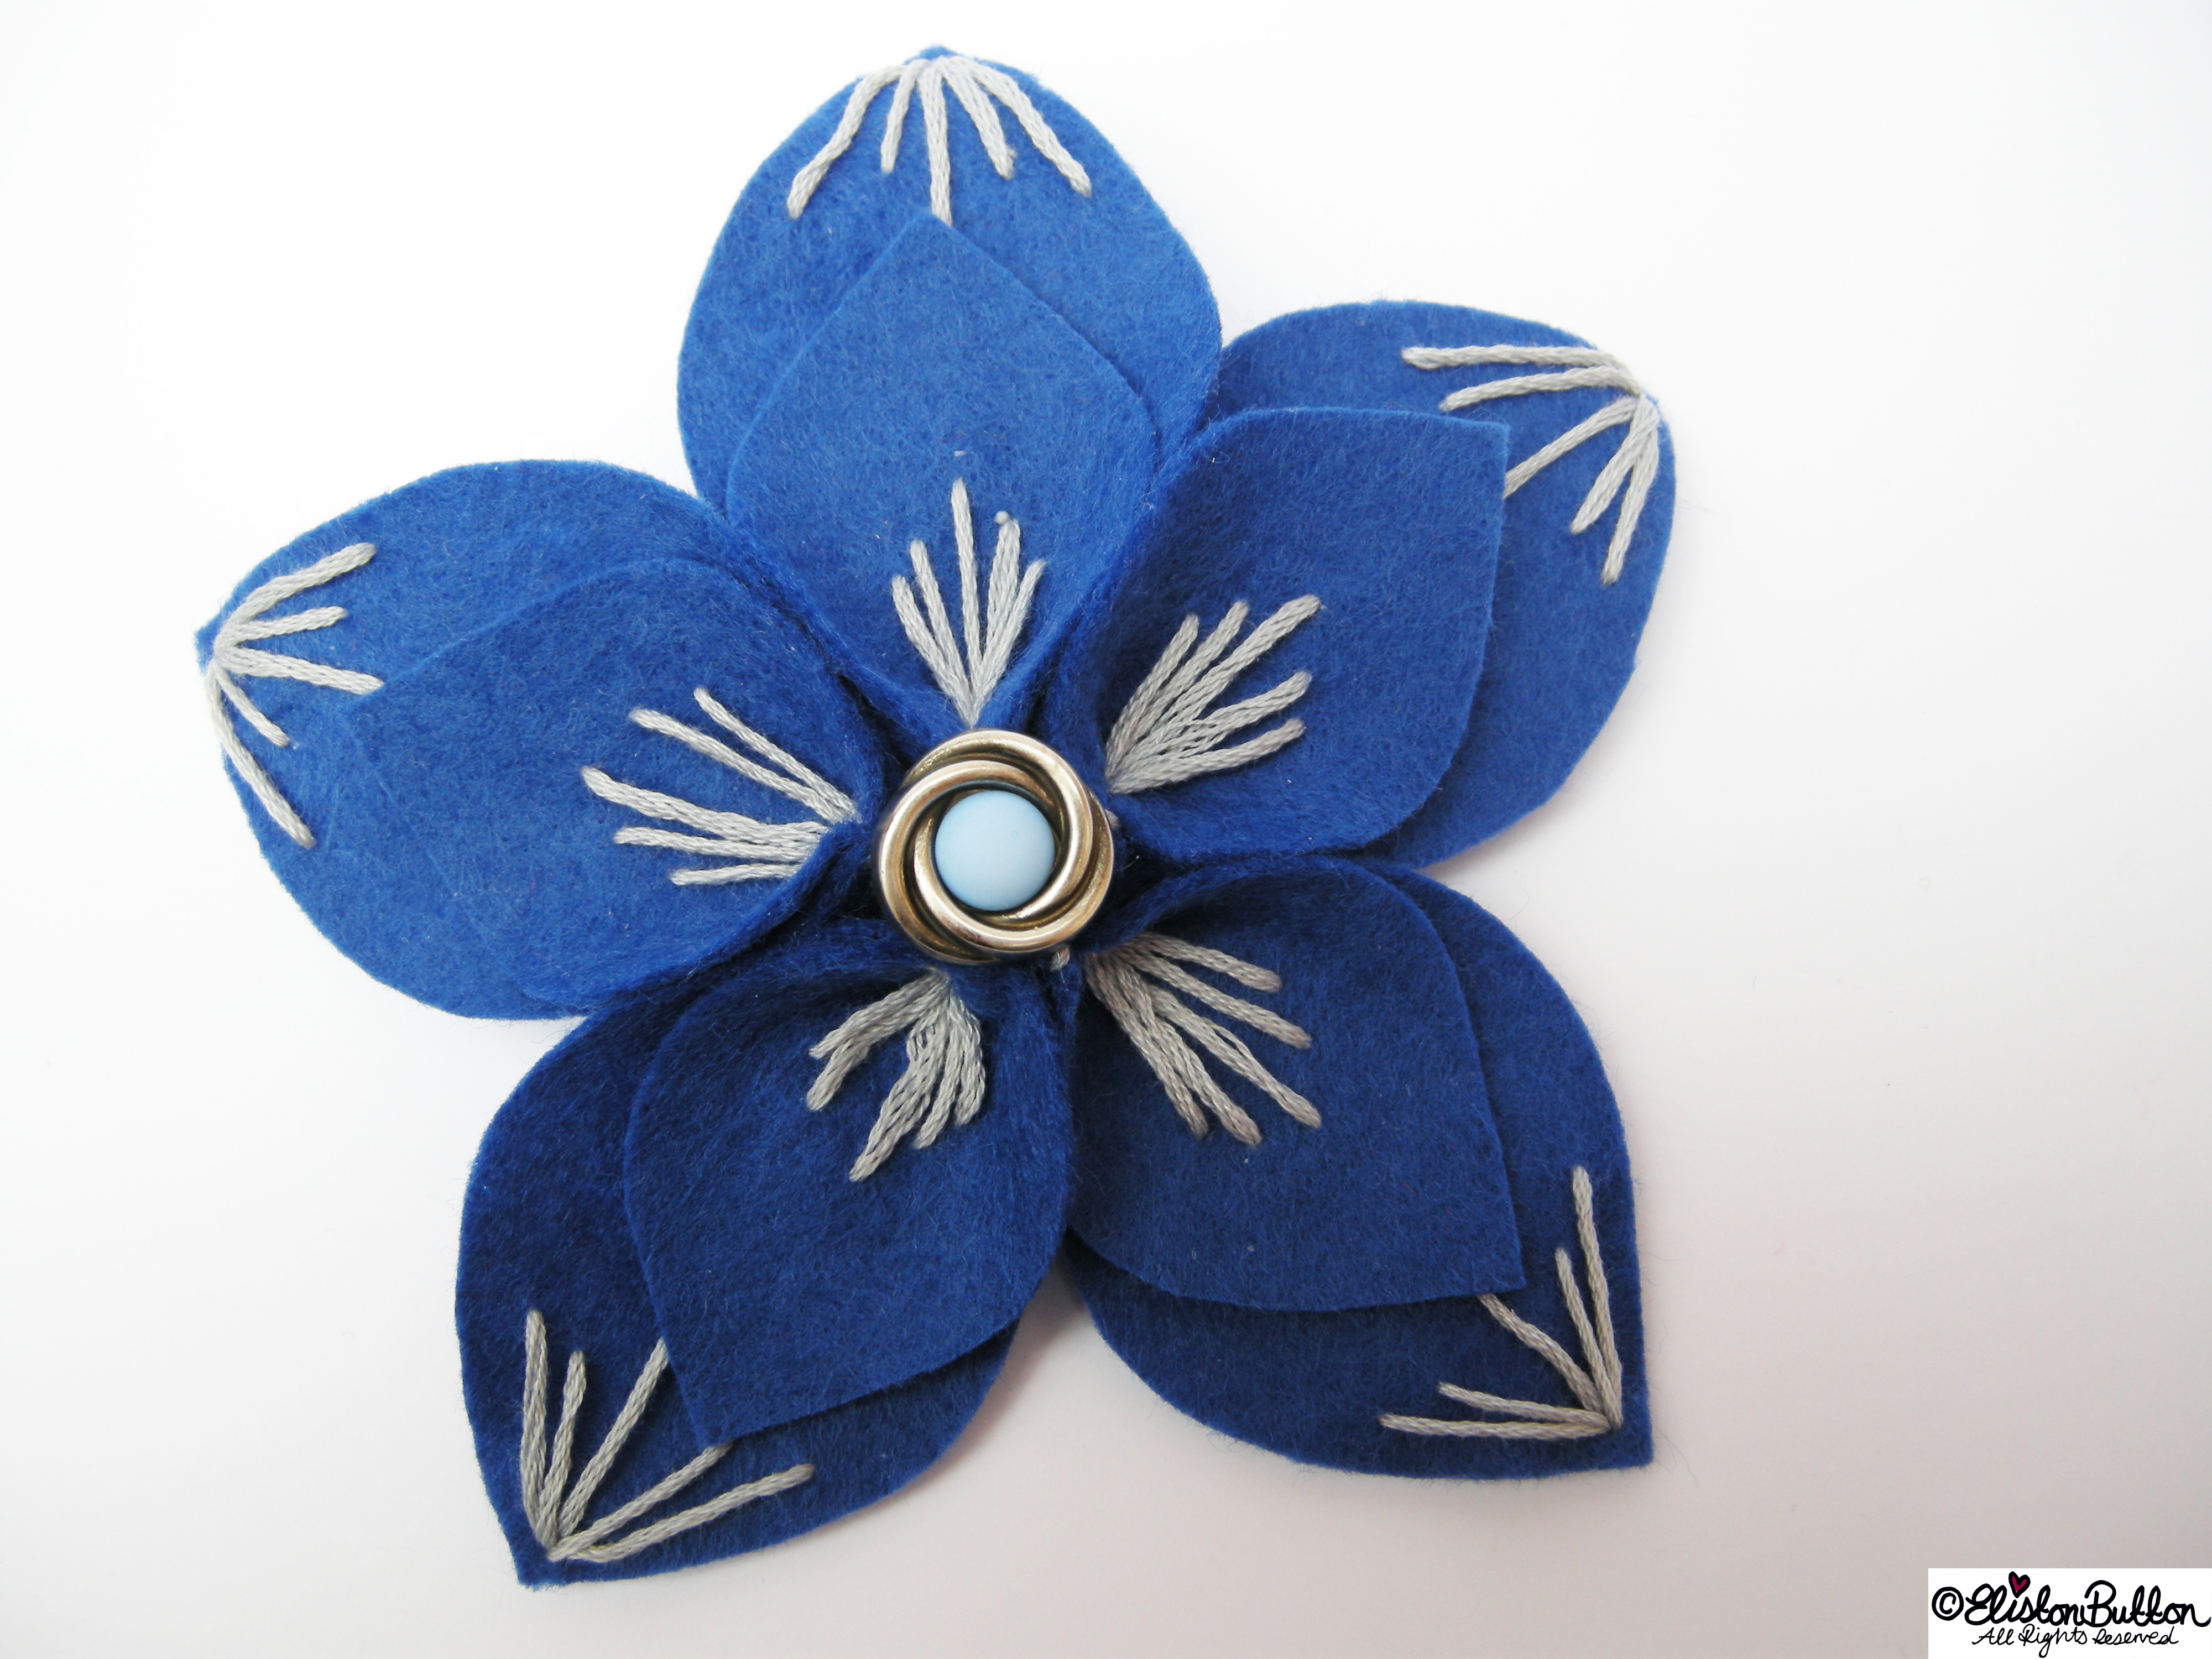 Out of the Blue Embroidered Felt Flower Brooch - 27 Before 27 - Out of the Blue at www.elistonbutton.com - Eliston Button - That Crafty Kid – Art, Design, Craft & Adventure.